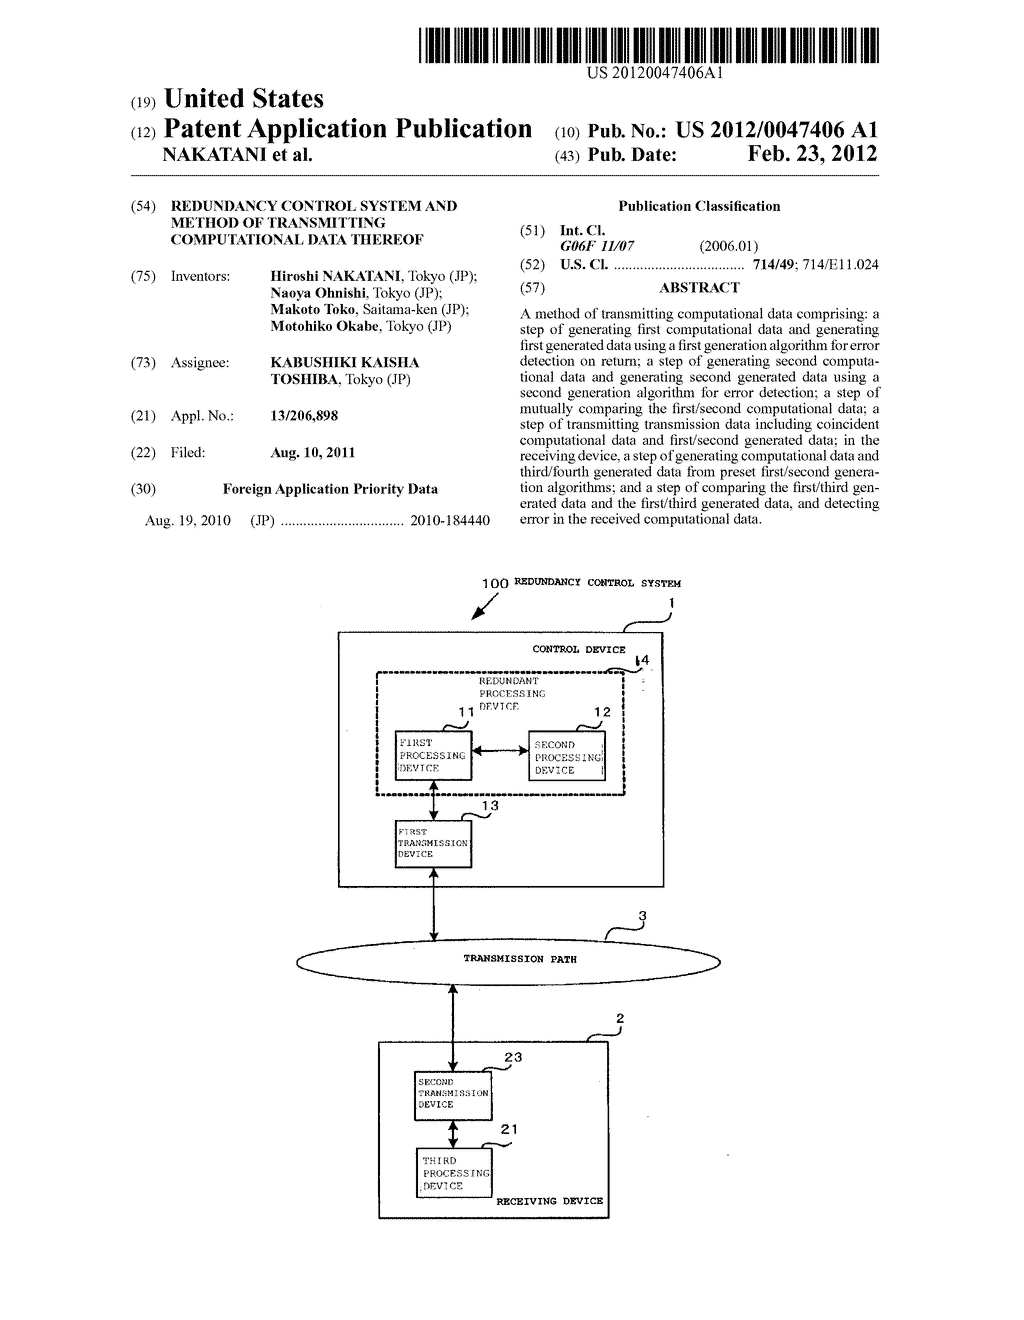 REDUNDANCY CONTROL SYSTEM AND METHOD OF TRANSMITTING COMPUTATIONAL DATA     THEREOF - diagram, schematic, and image 01